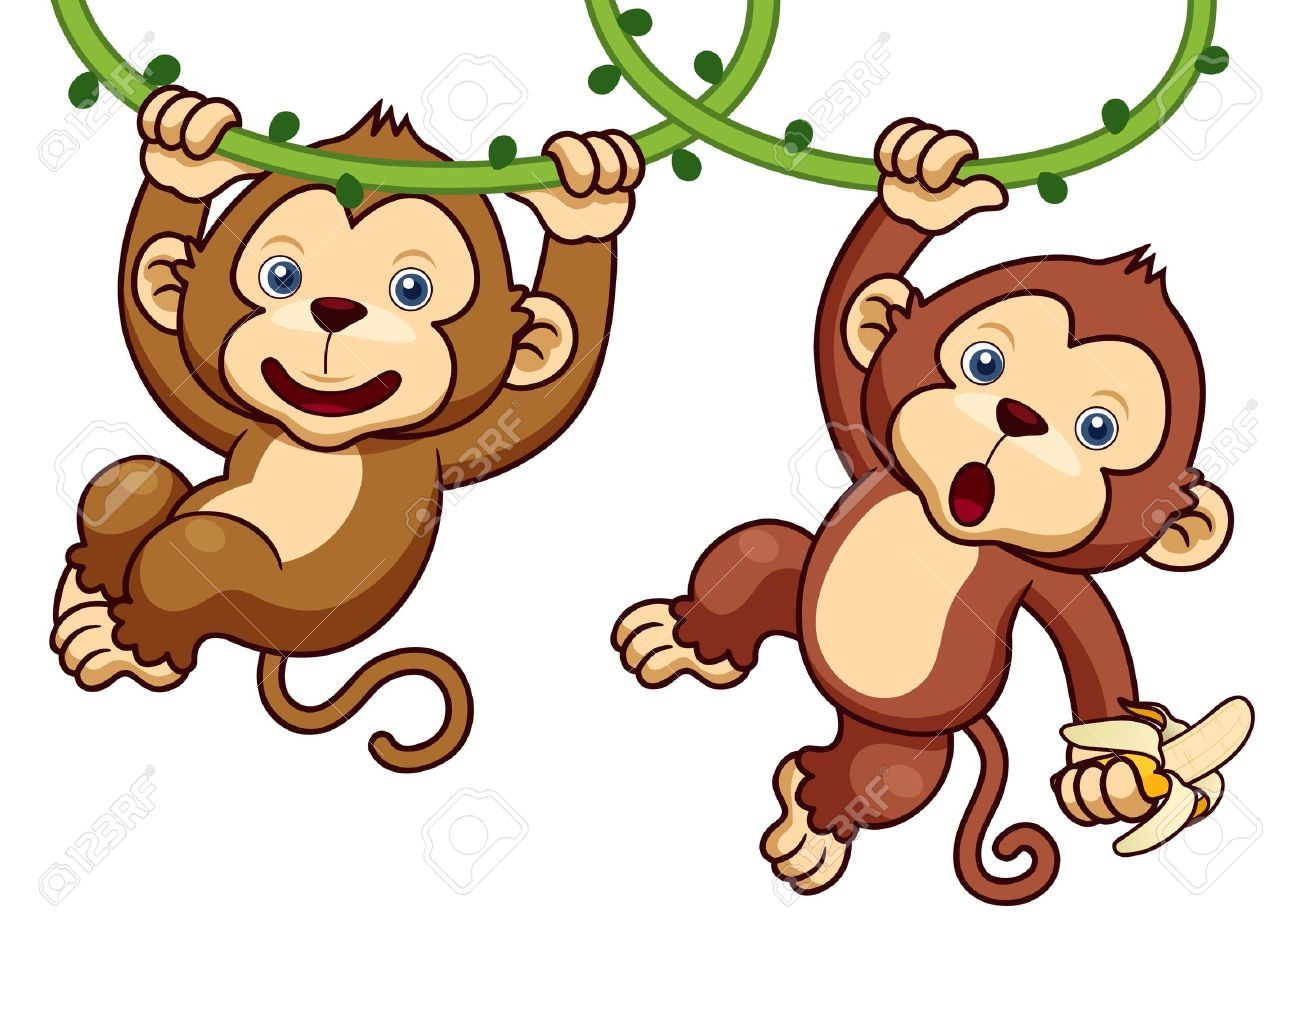 731 Jumping Monkey Stock Vector Illustration And Royalty Free.